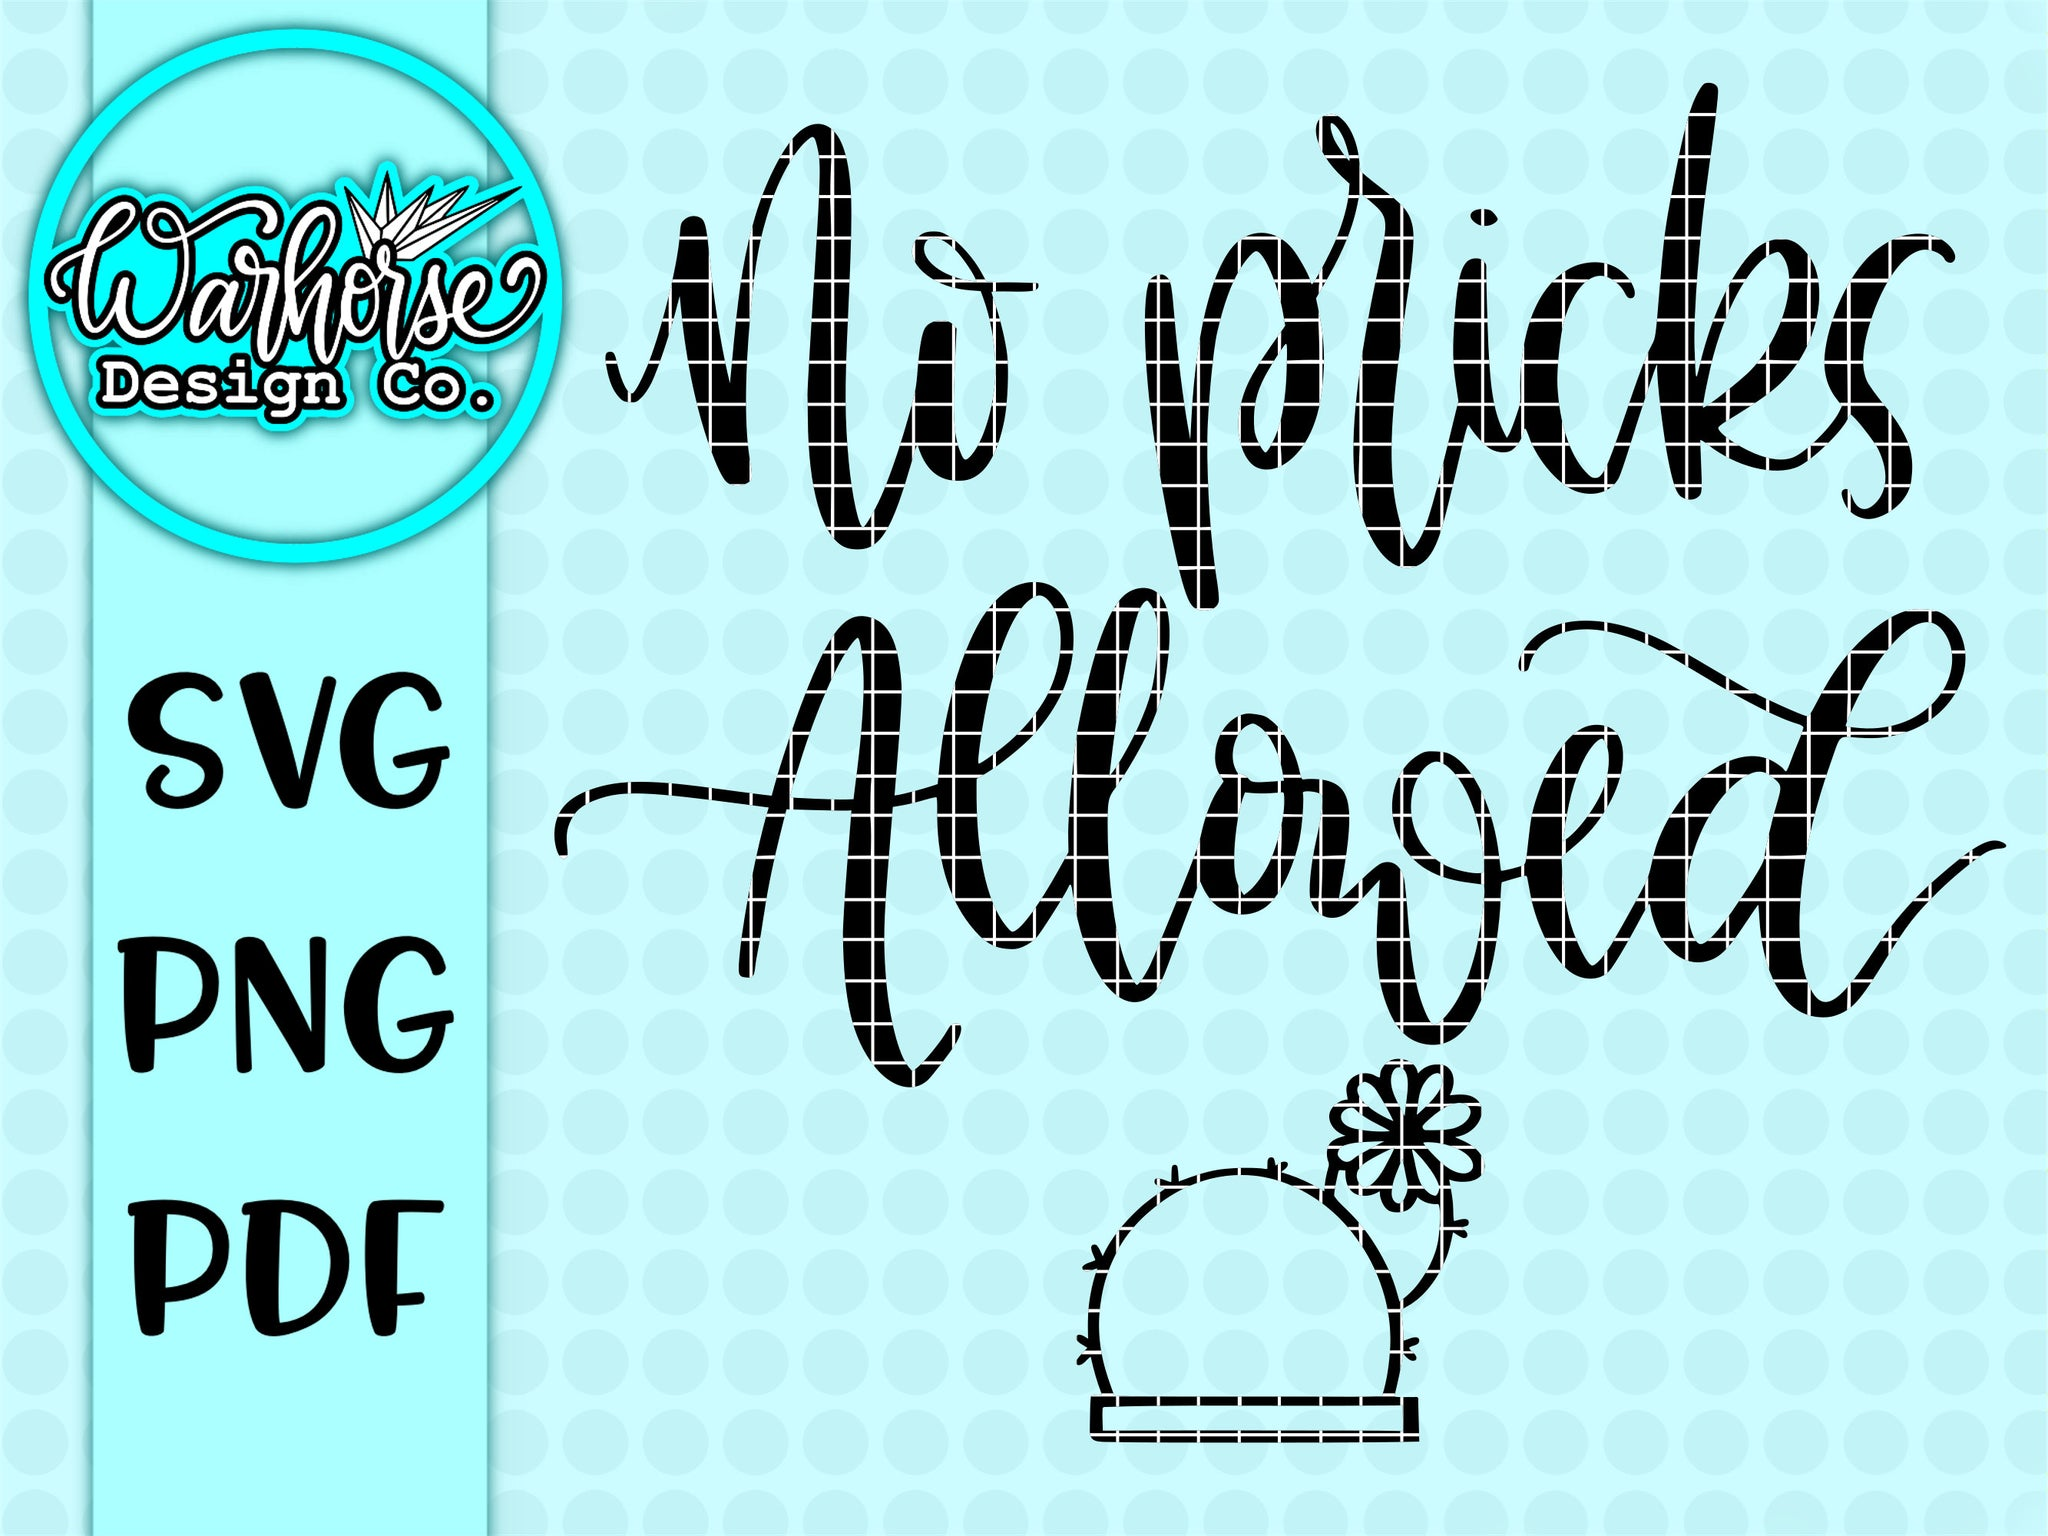 No Pricks Allowed SVG PNG PDF